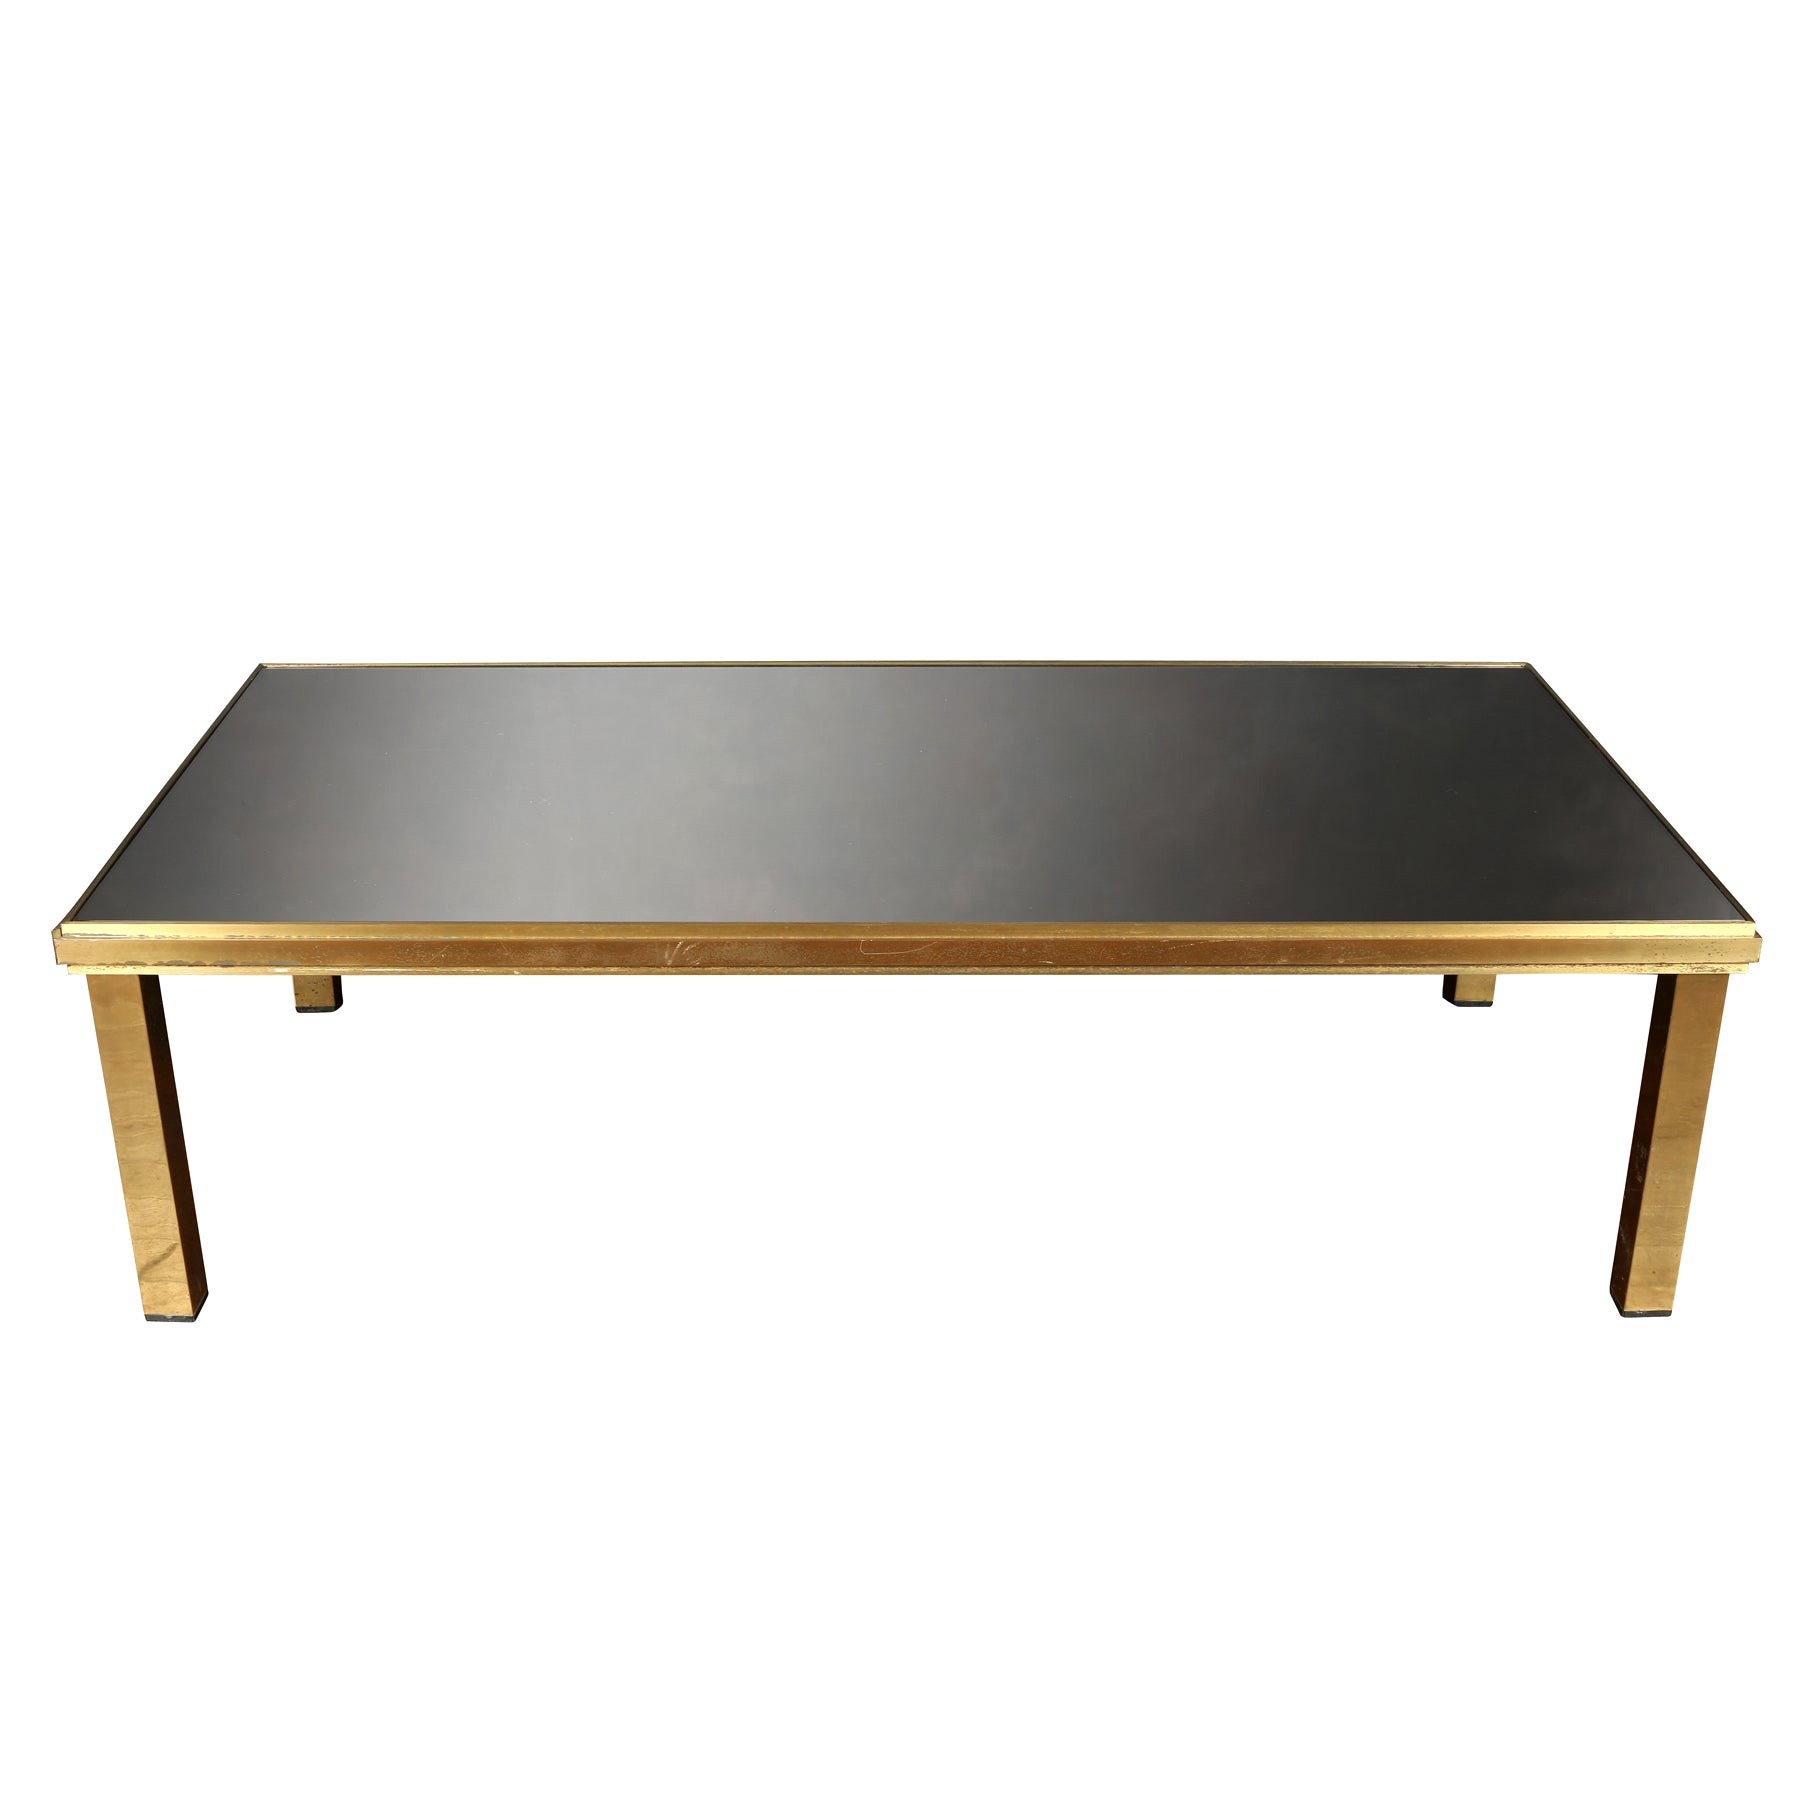 Vintage Deco Brass Coffee Table with Black Glass Top